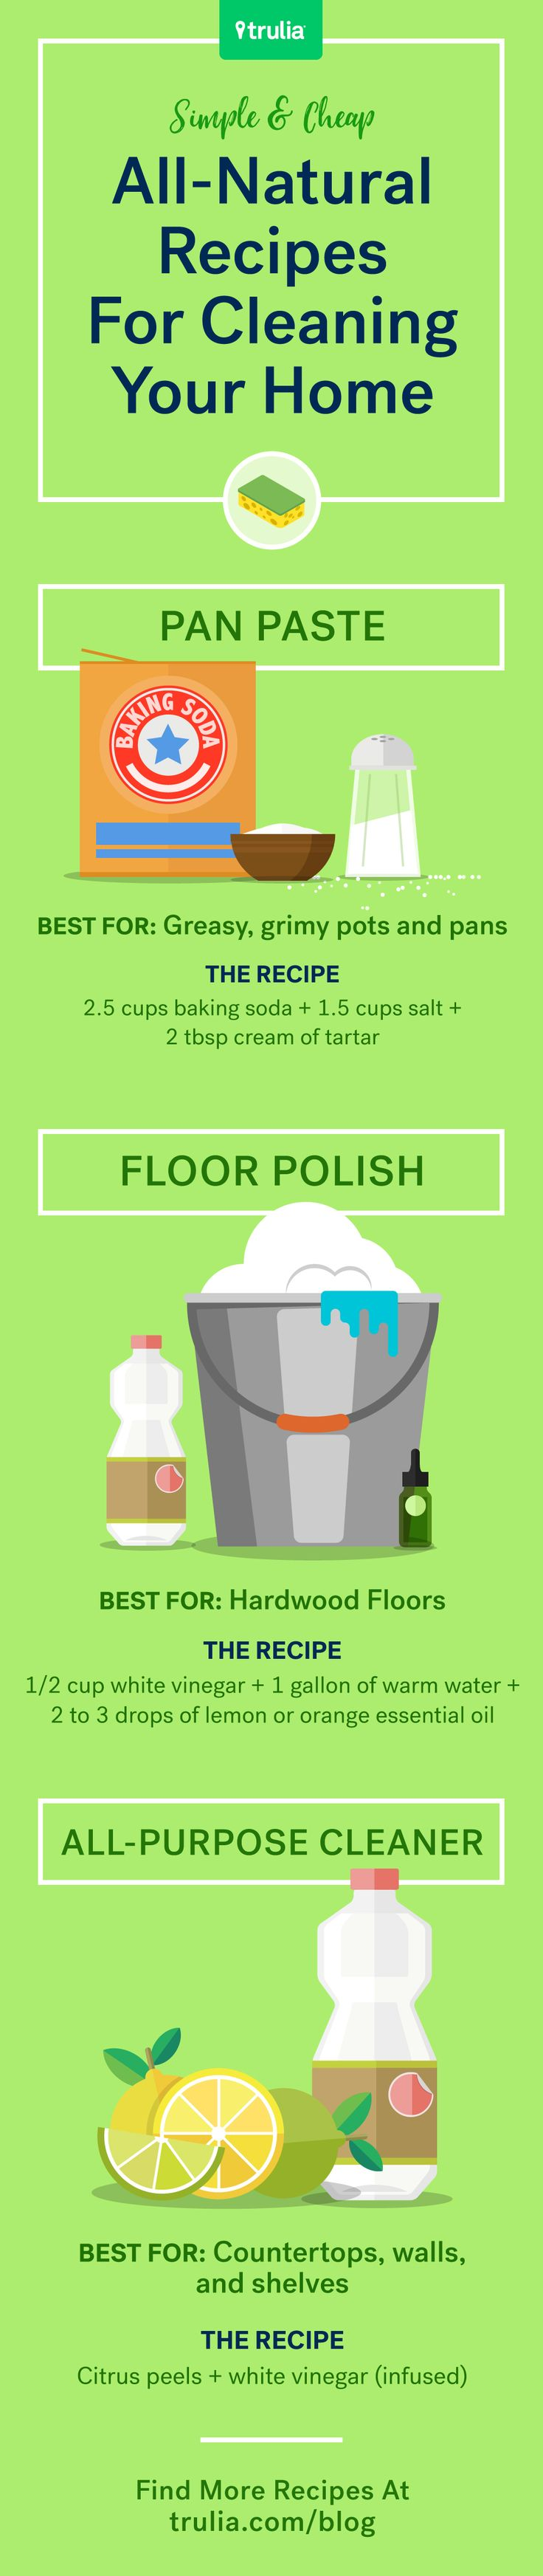 Best all natural cleaning products - 7 Recipes For Natural Cleaning Products For Your Home Life At Home Trulia Blog